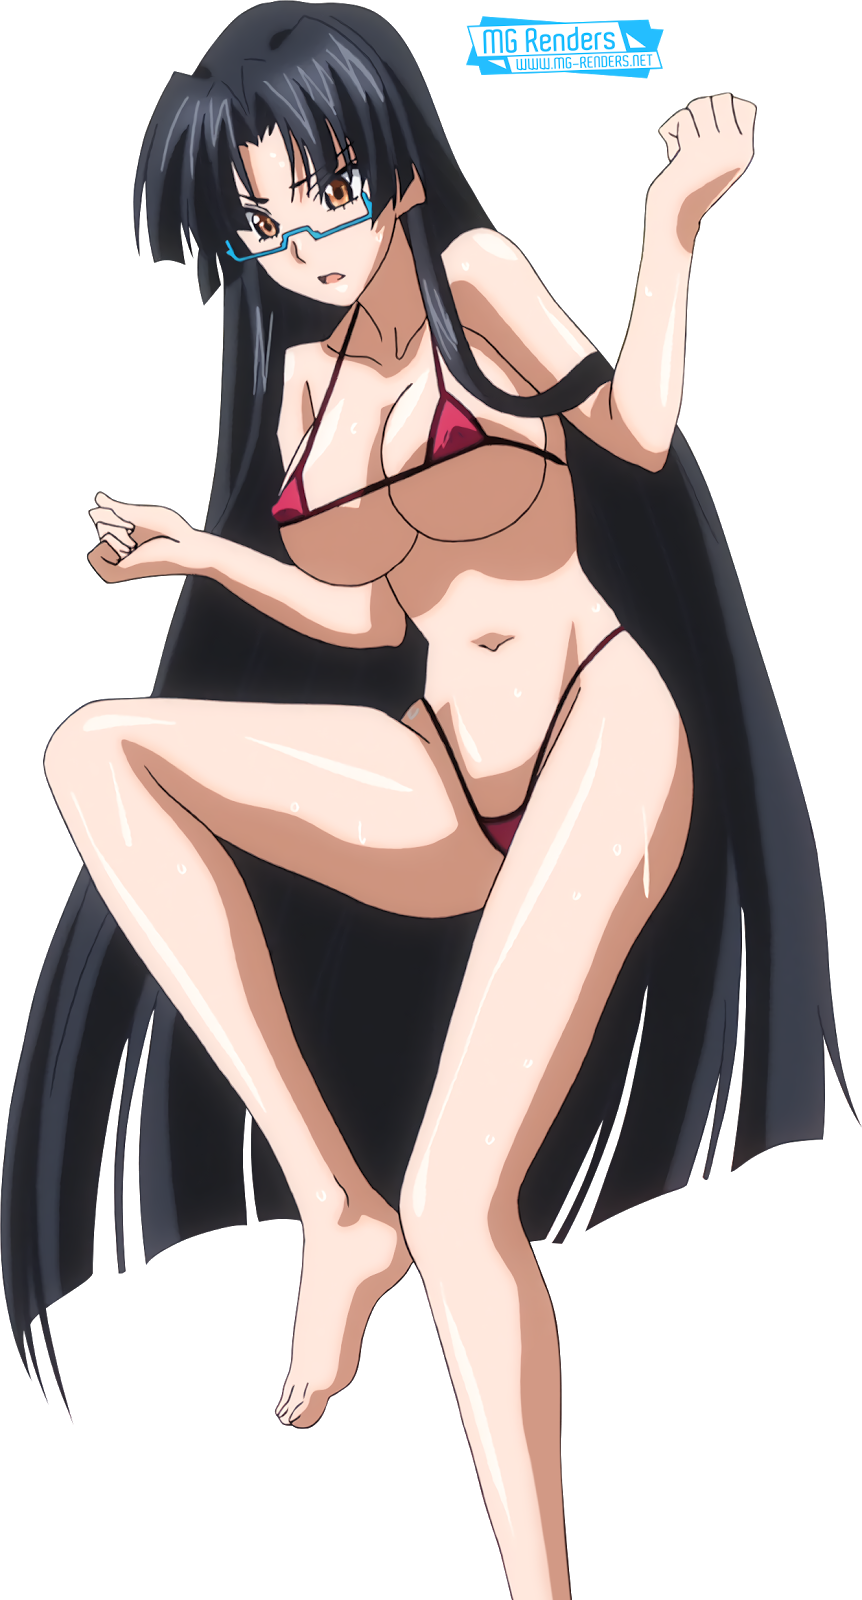 Tags: Anime, Render,  Feet,  High School DxD, ハイスクールD×D, Haisukūru D×D,  Huge Breasts,  Shinra Tsubaki,  PNG, Image, Picture